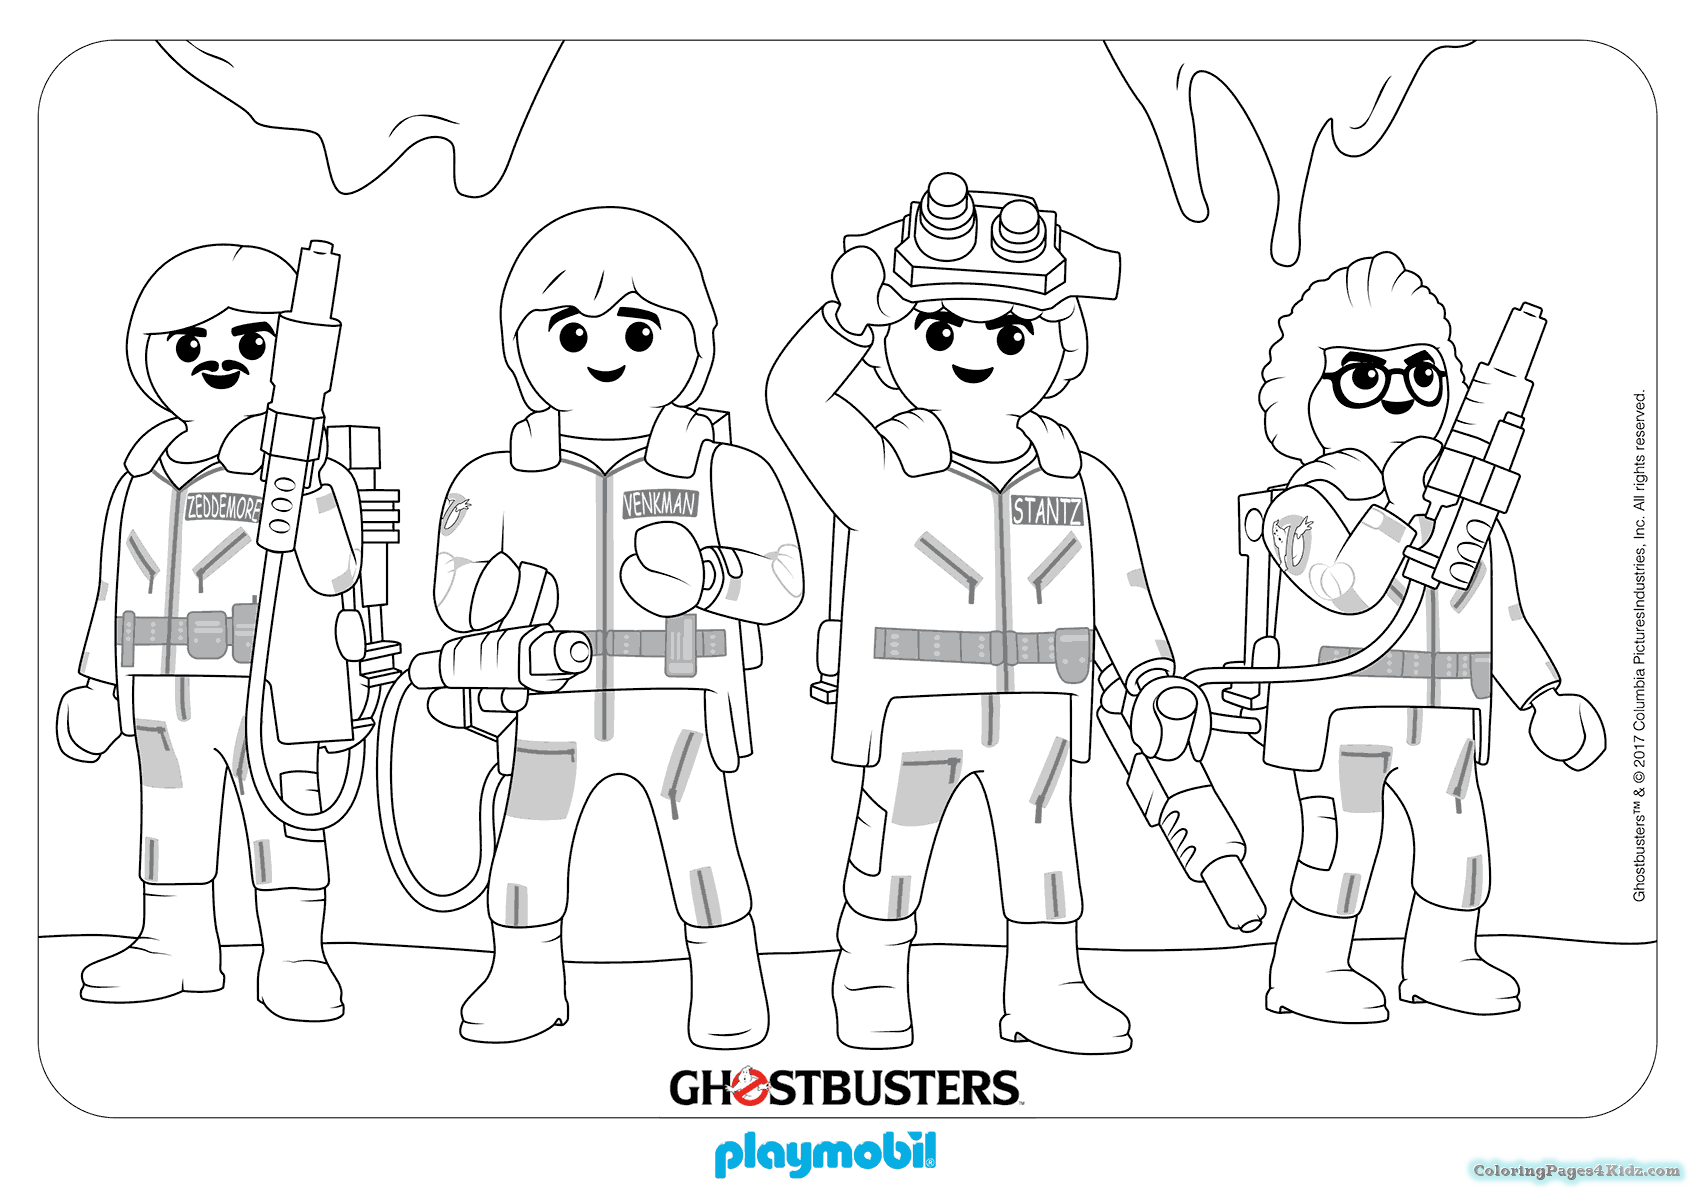 the best free playmobil coloring page images download